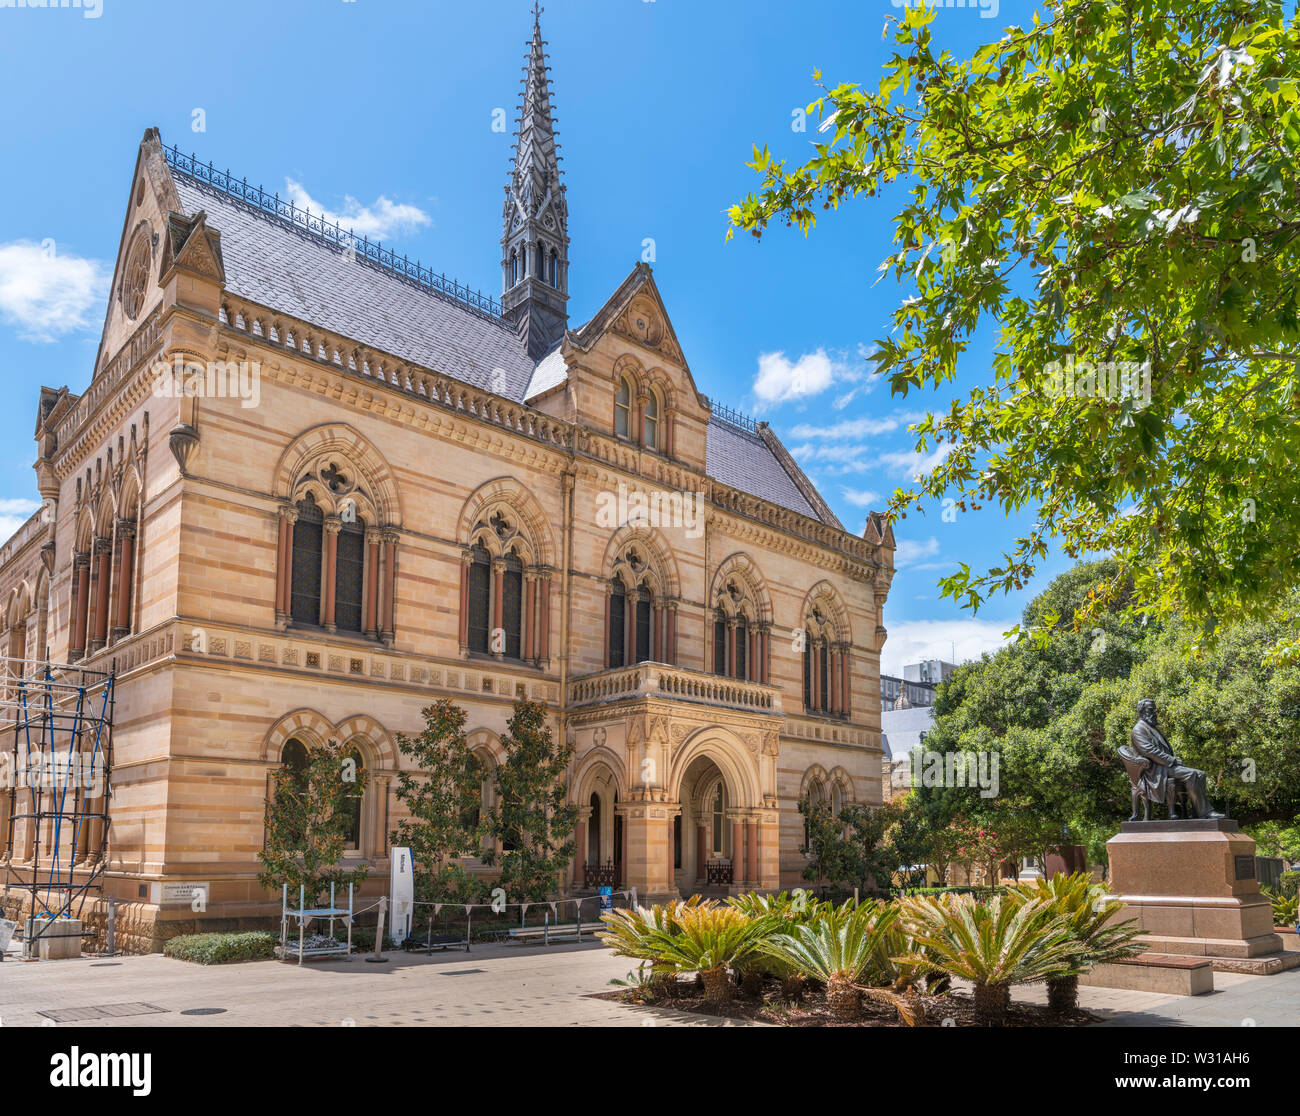 The Mitchell Building at the University of Adelaide, North Terrace, Adelaide, South Australia, Australia Stock Photo